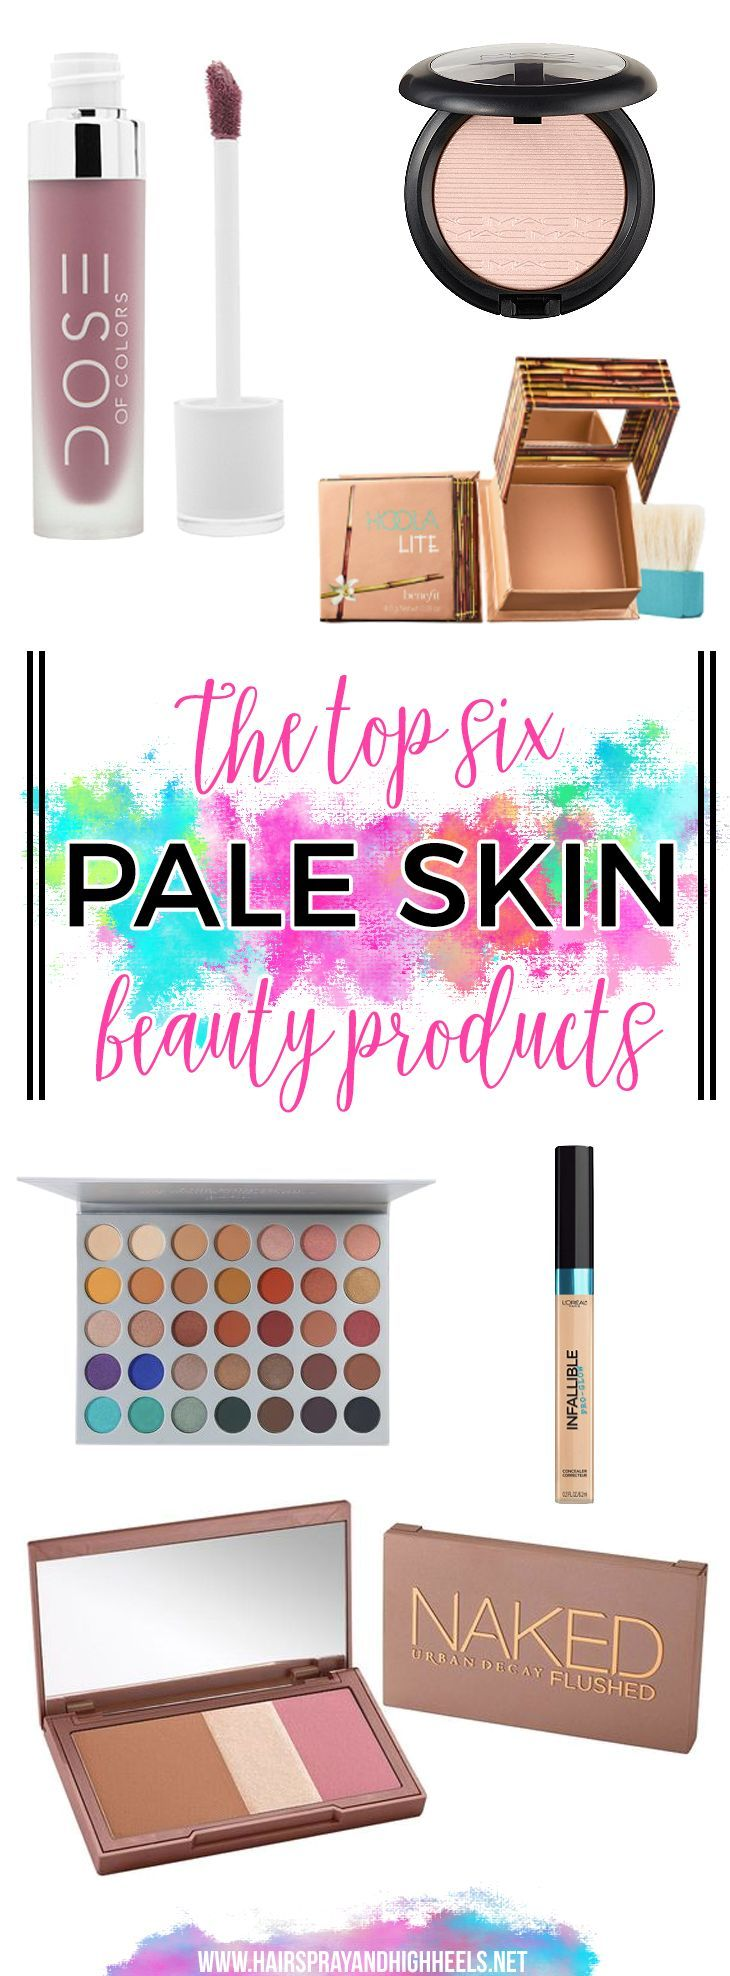 The TOP 6 Beauty Products for Pale Skin!!